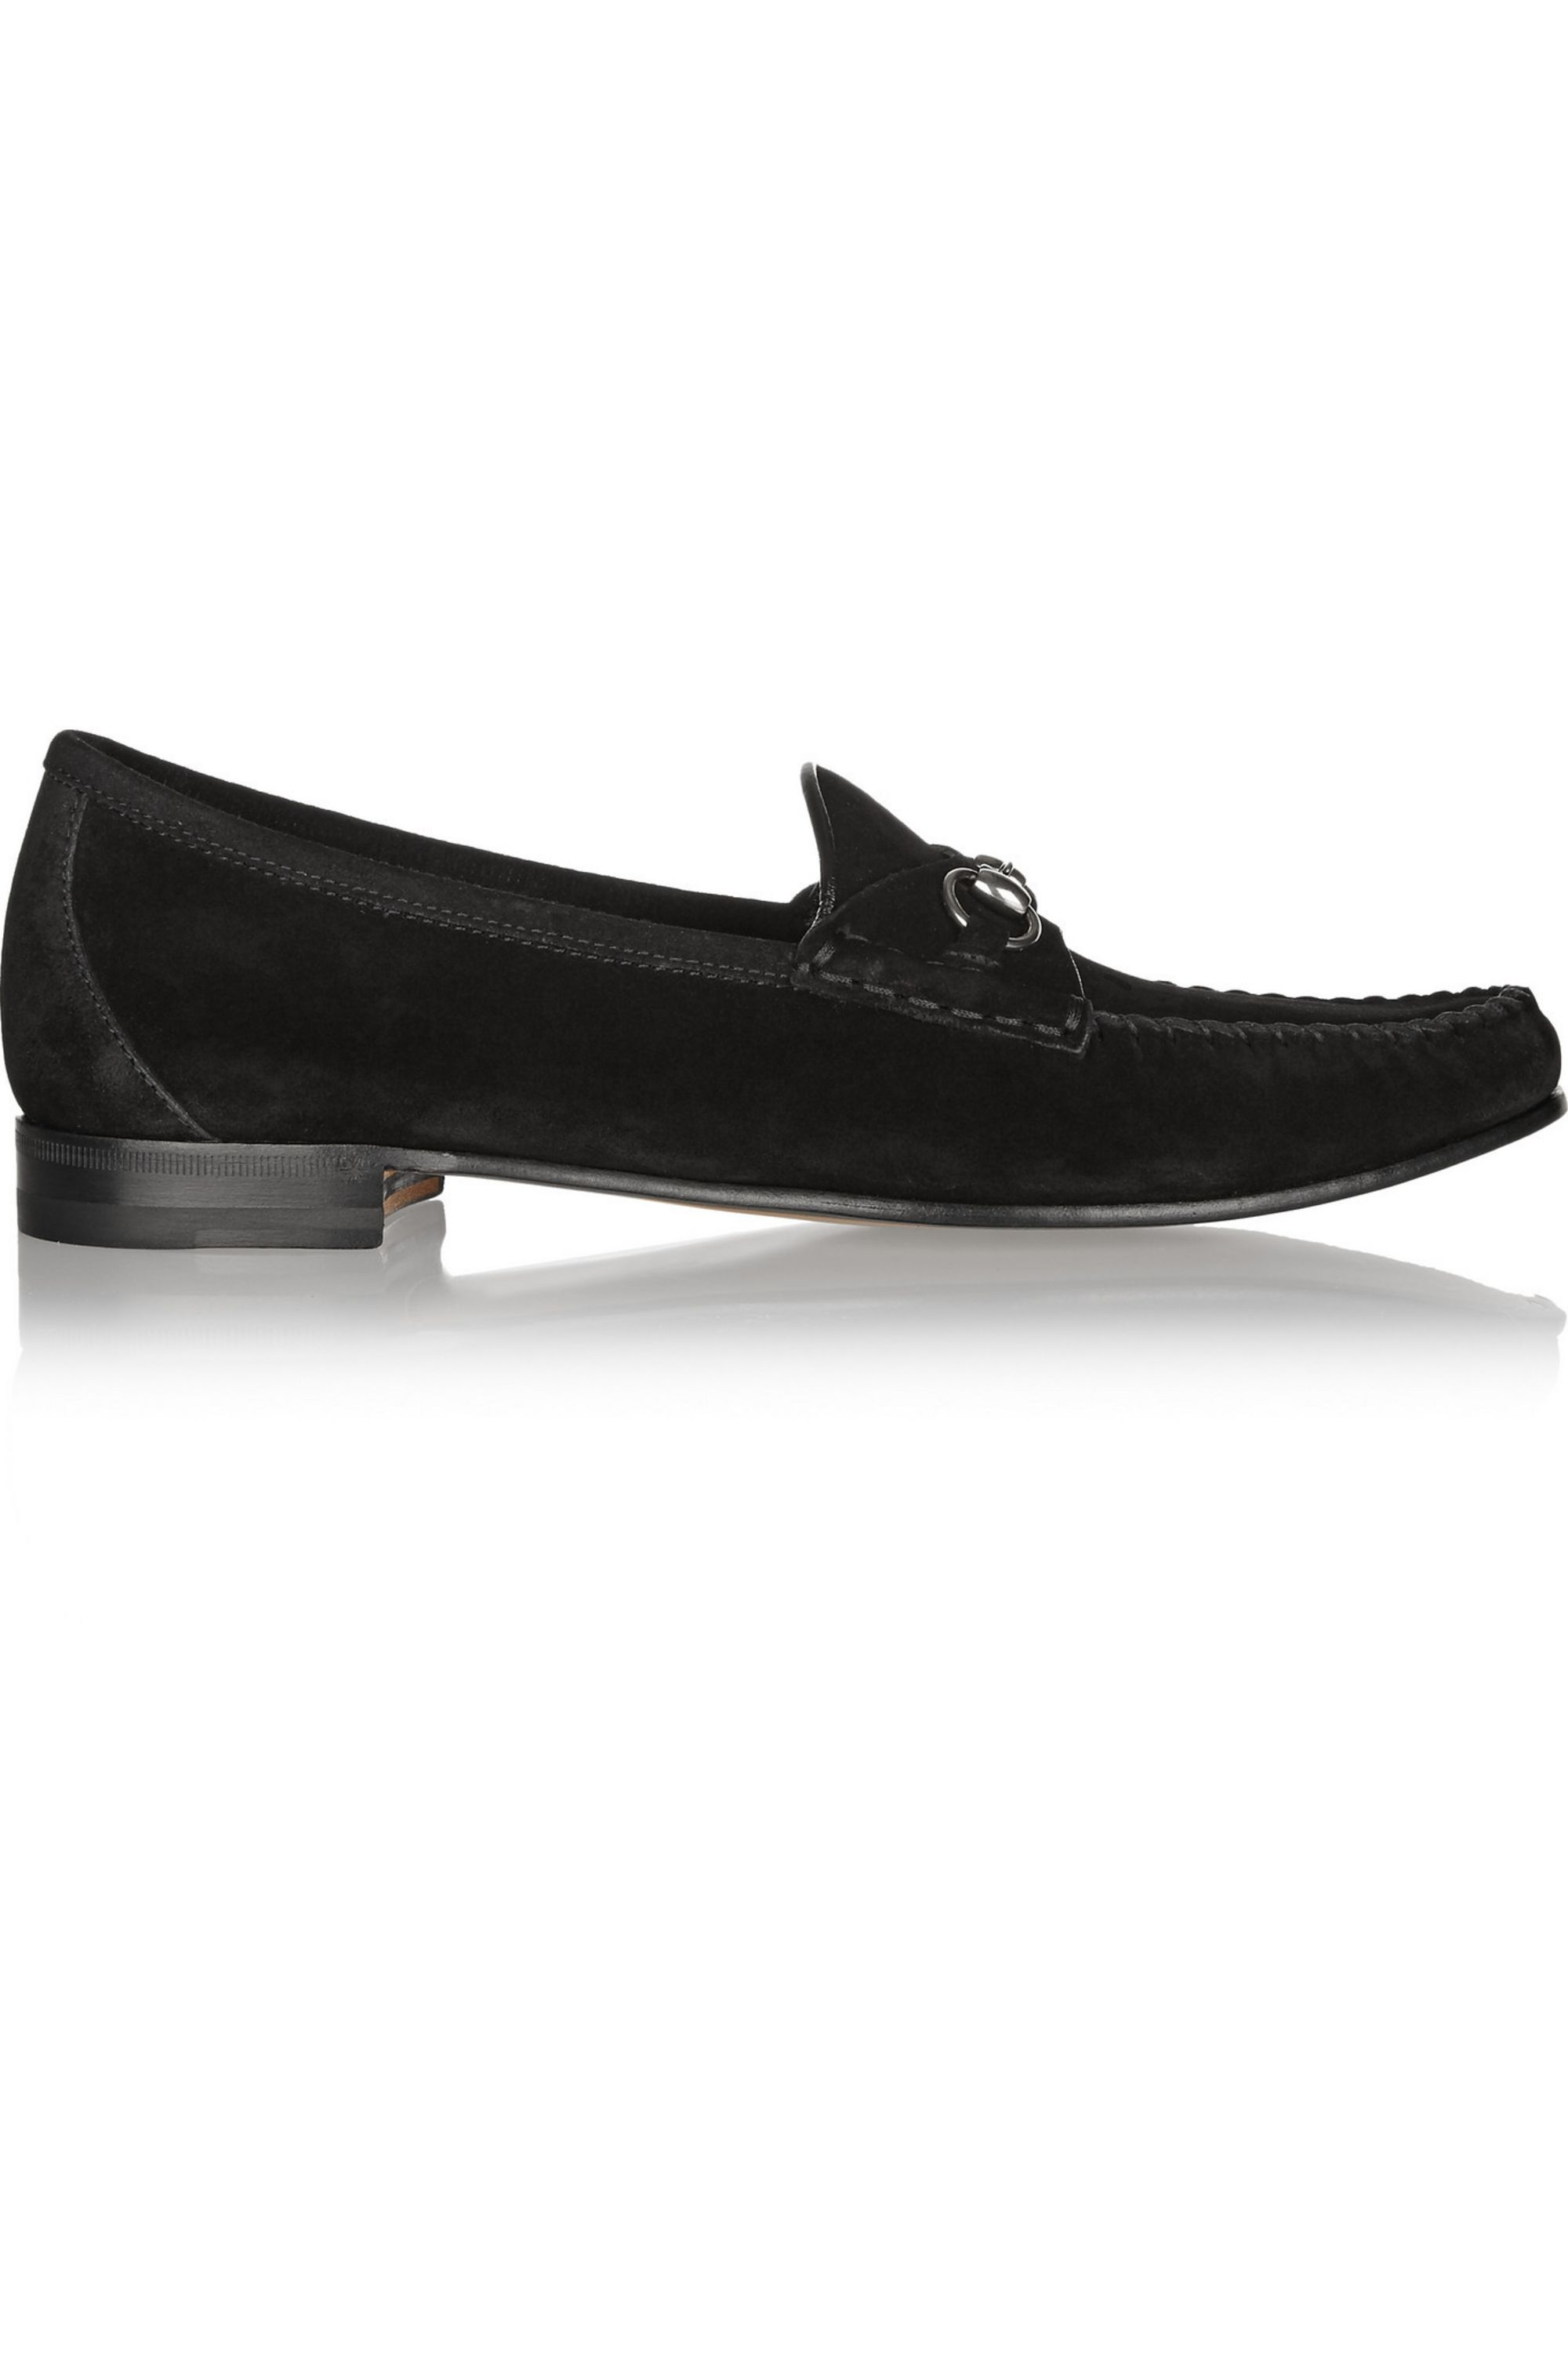 Gucci Horsebit-detailed suede loafers